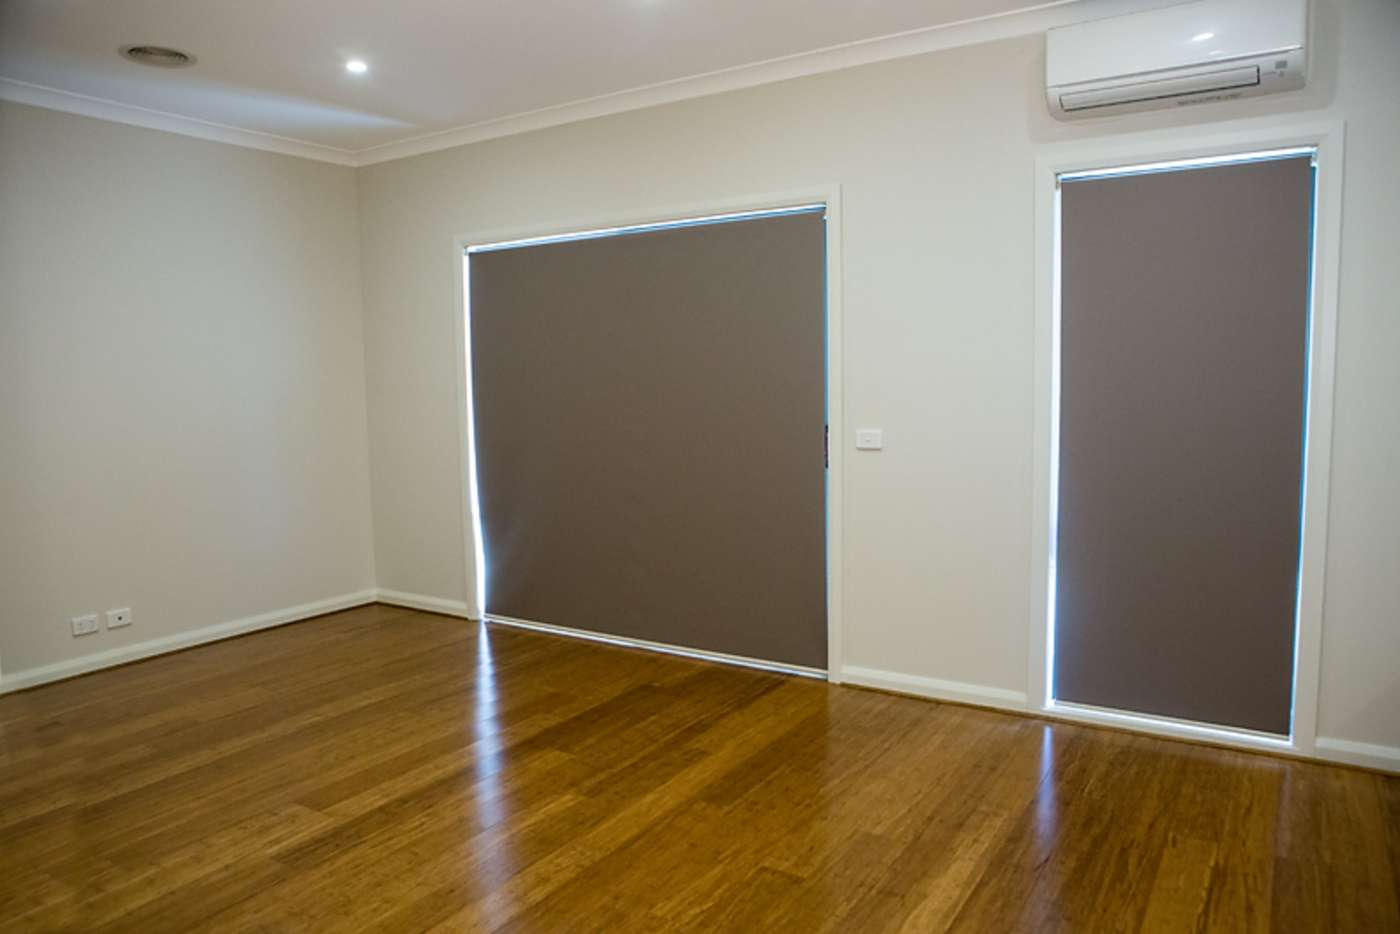 Sixth view of Homely unit listing, 2/71 Exeter Road, Croydon North VIC 3136